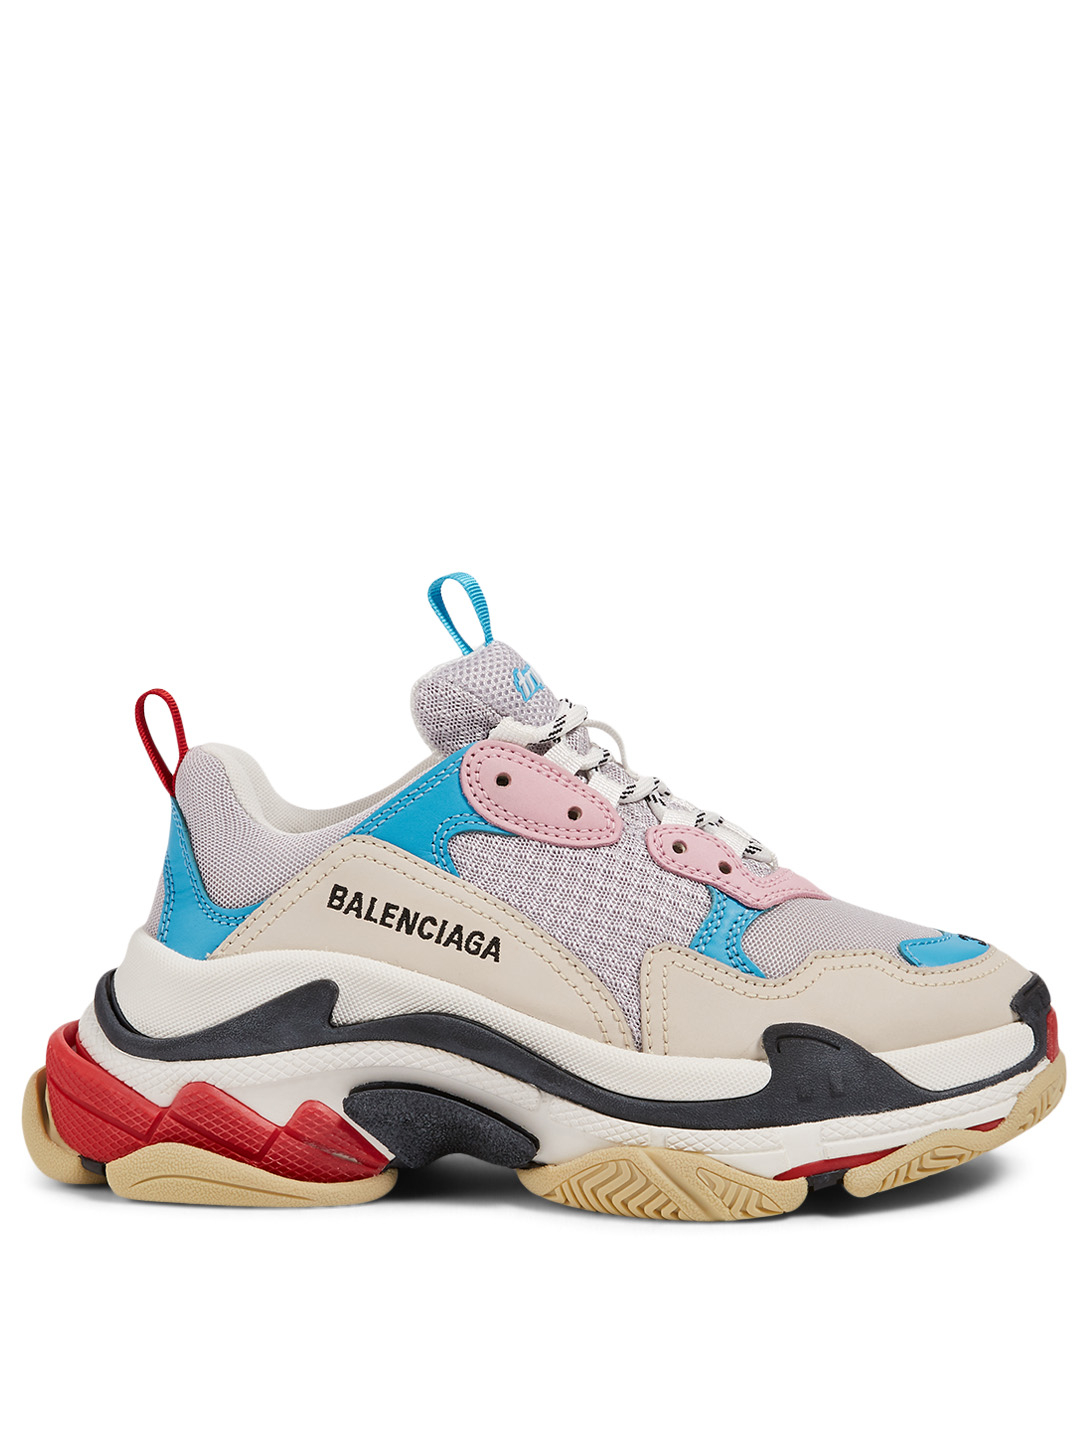 StockX This Balenciaga Triple S collab is selling for